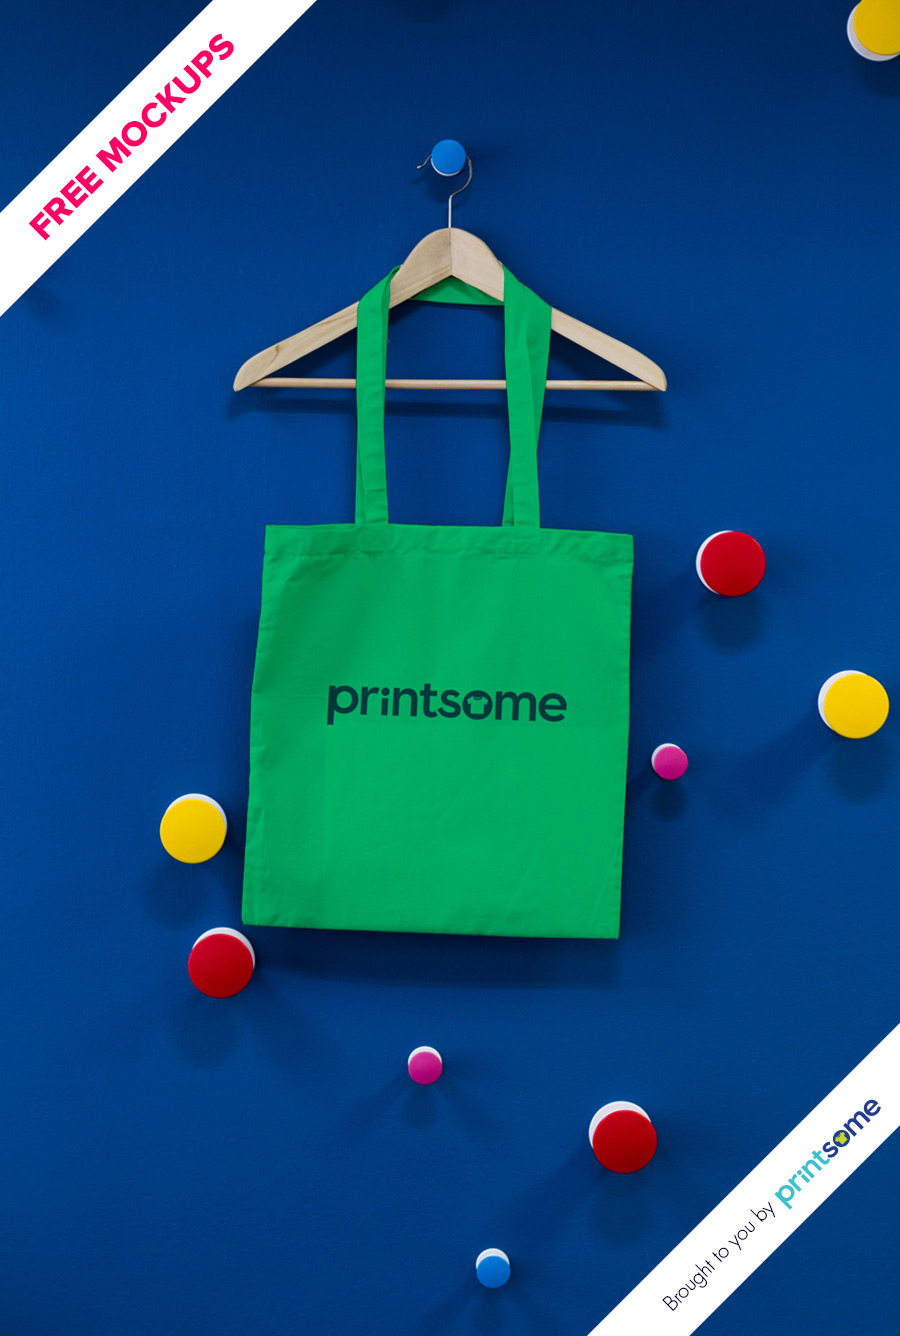 03_Tote-bag-spotty-wall-mockup